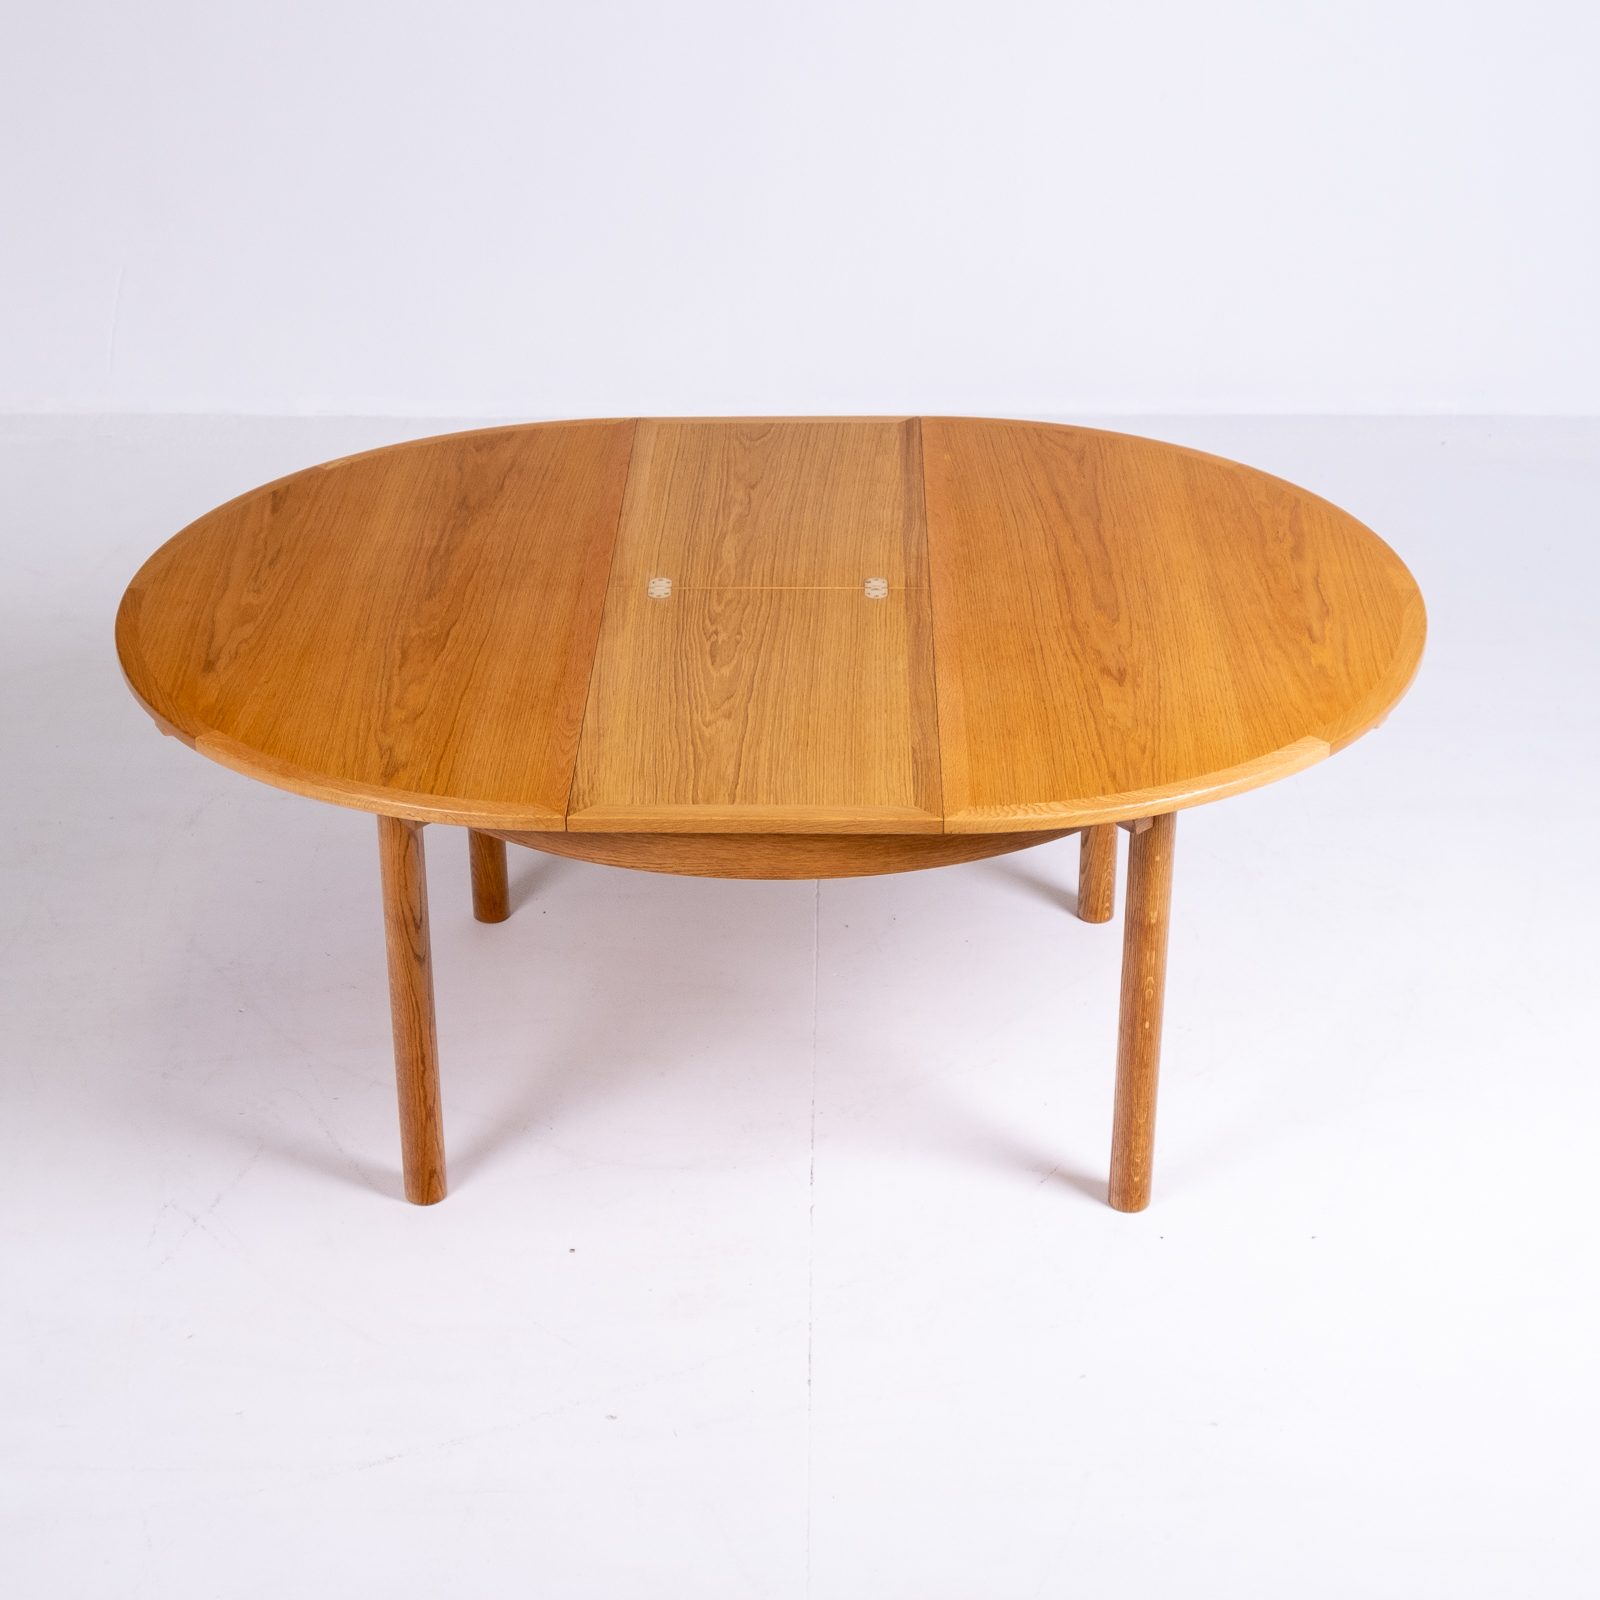 Round 140 Dining Table By Borge Mogensen For Karl Andersson & Söner In Oak With Butterfly Extensions, 1960s, Denmark76